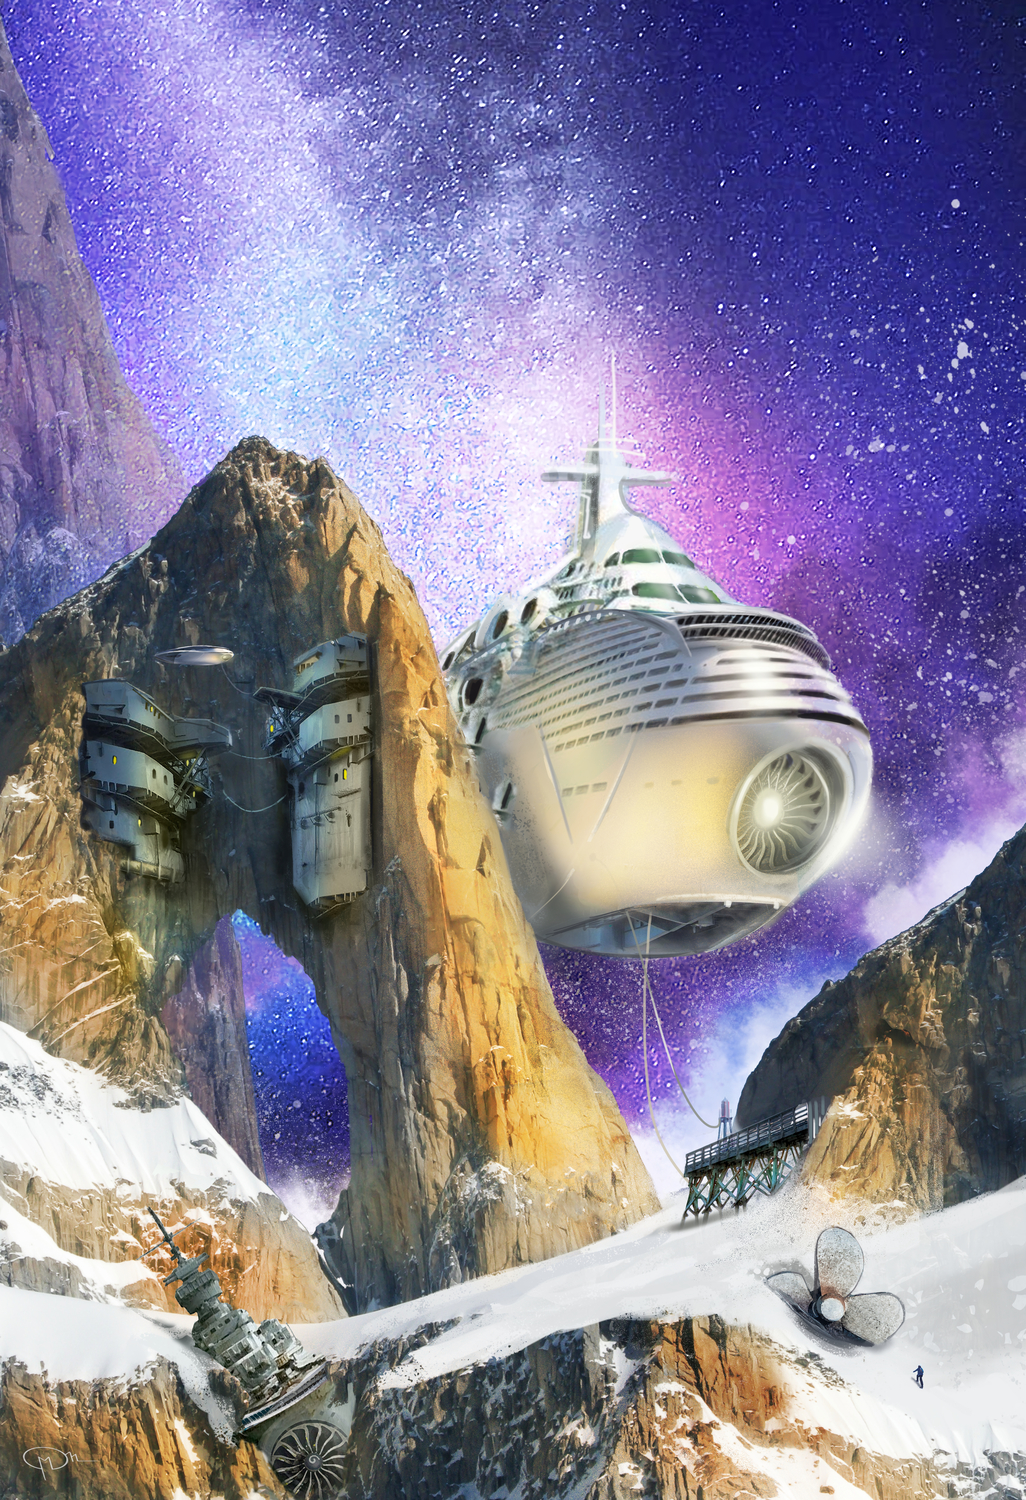 The 2020 Look at Space Opera Book Artwork by Maurizio Manzieri